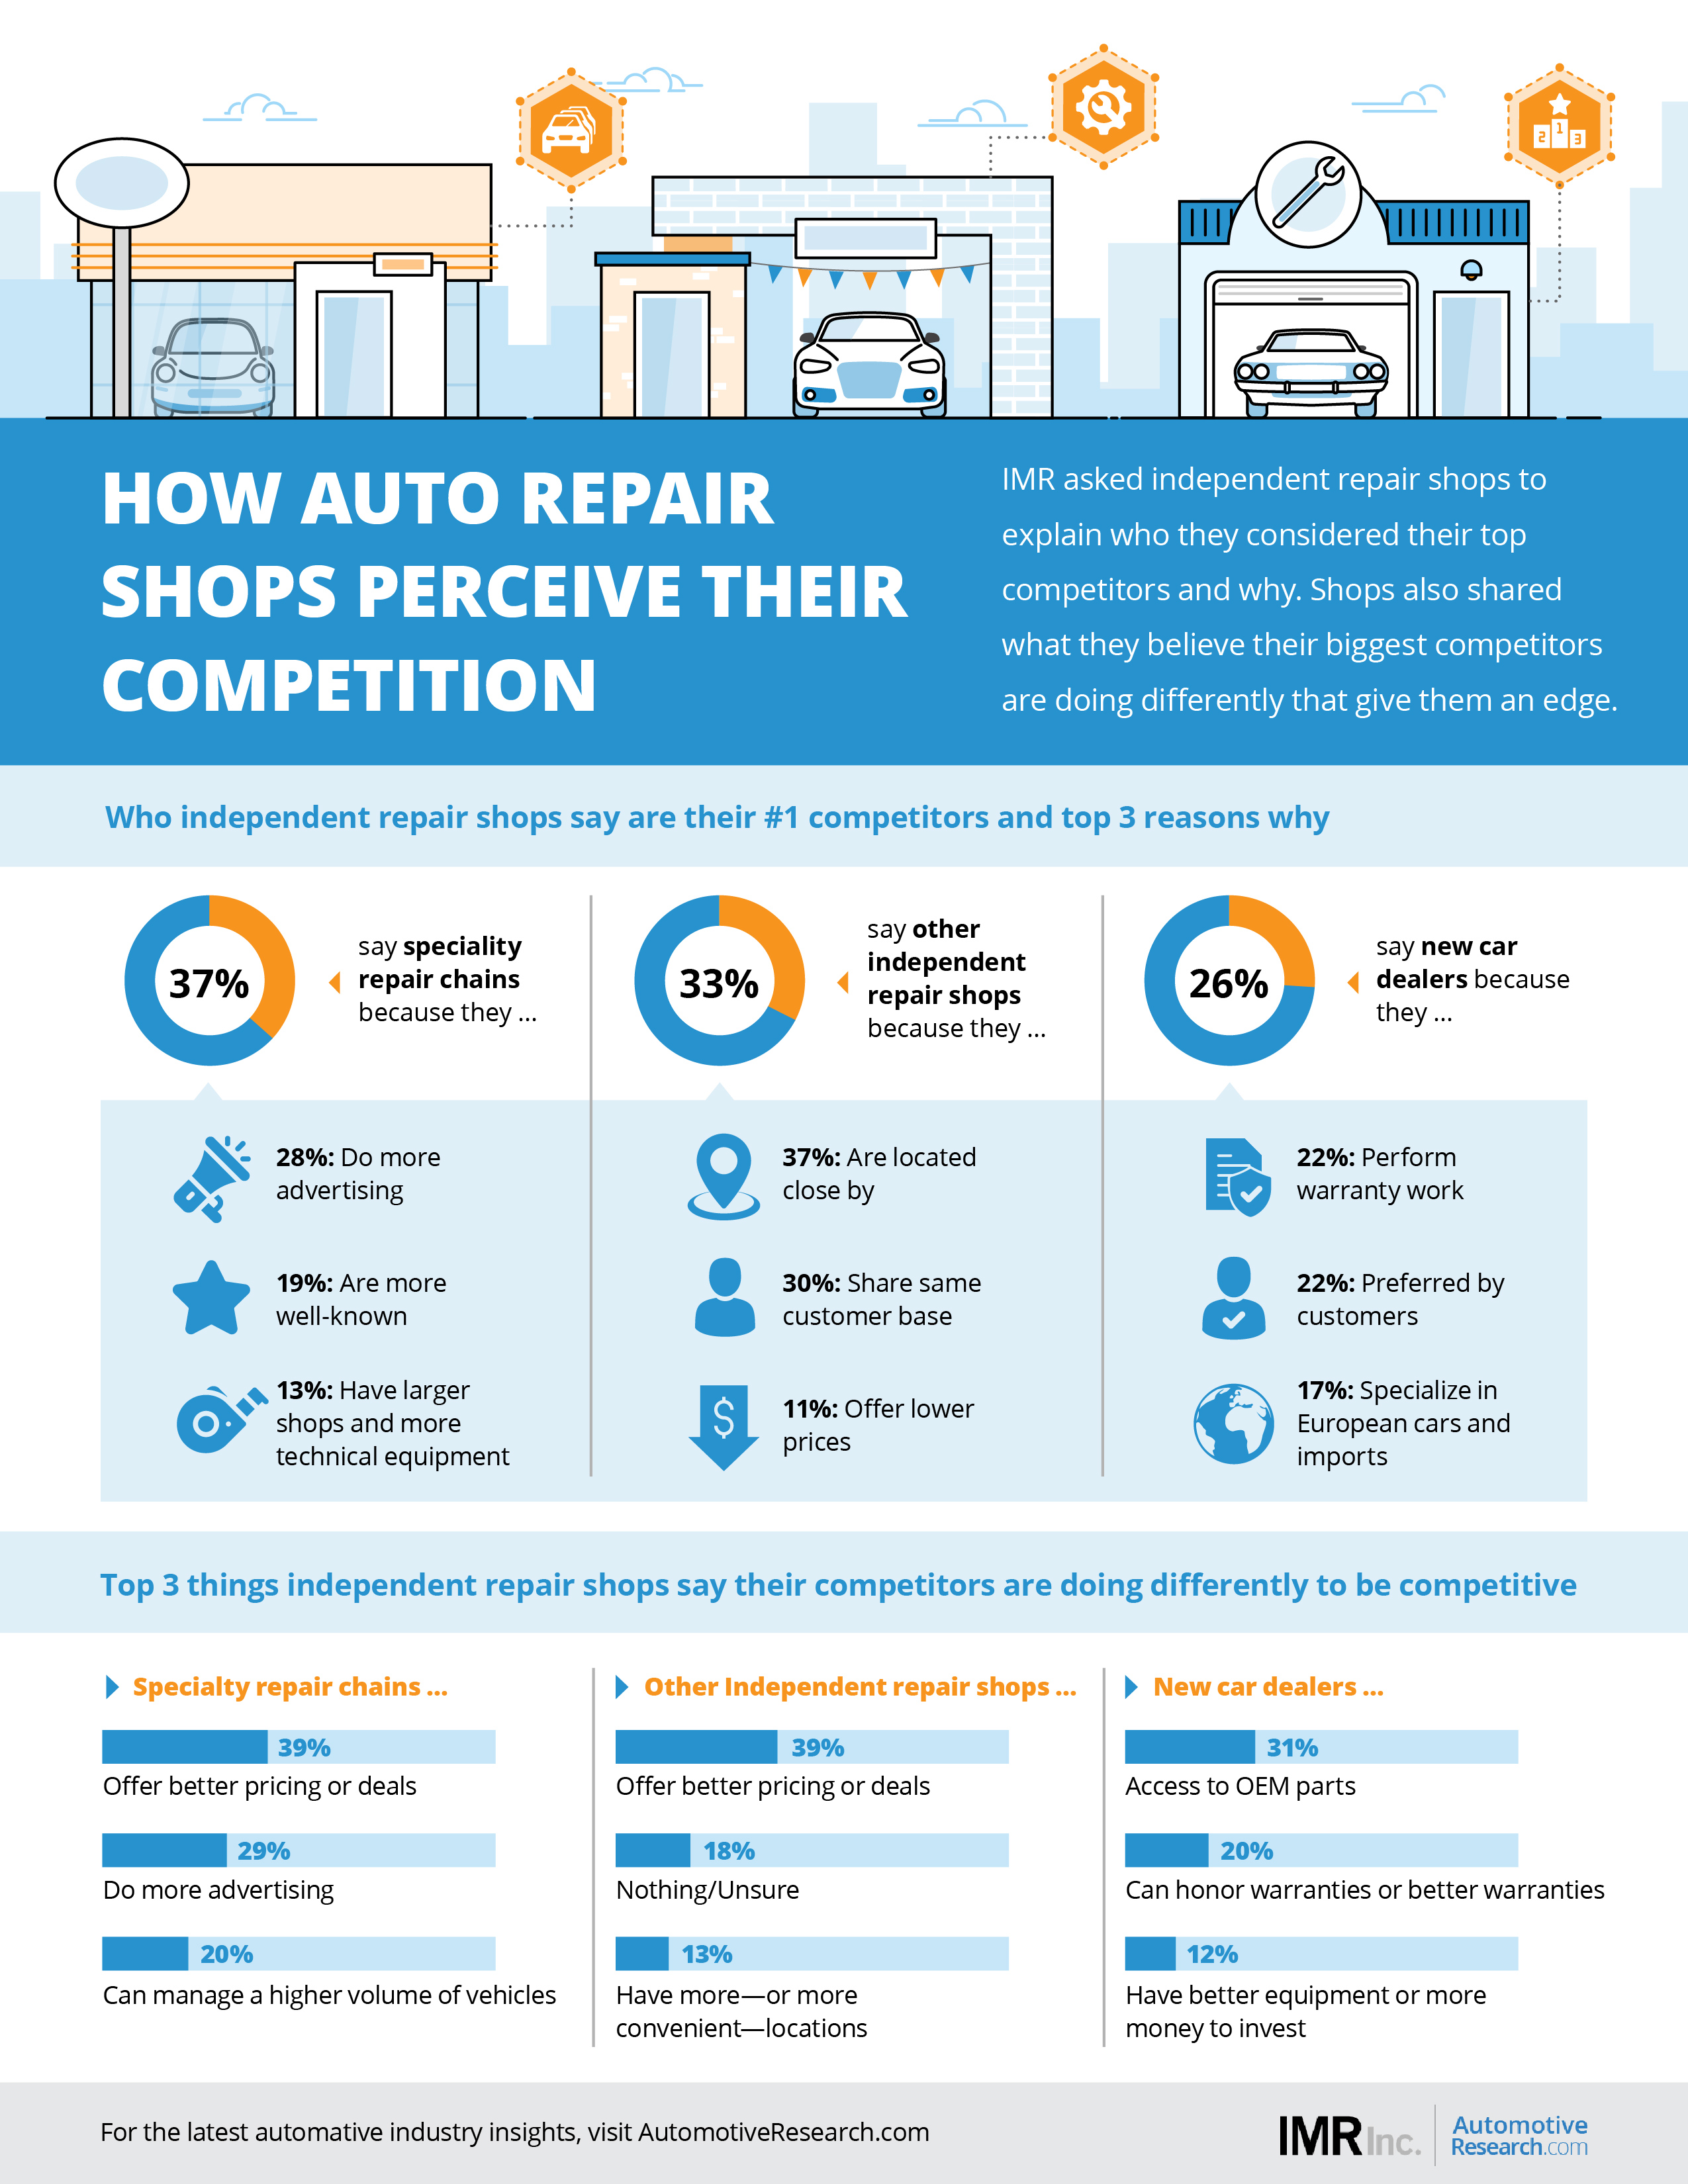 IMR Automotive Market Research Auto Repair Shops Perceive Competition Infographic